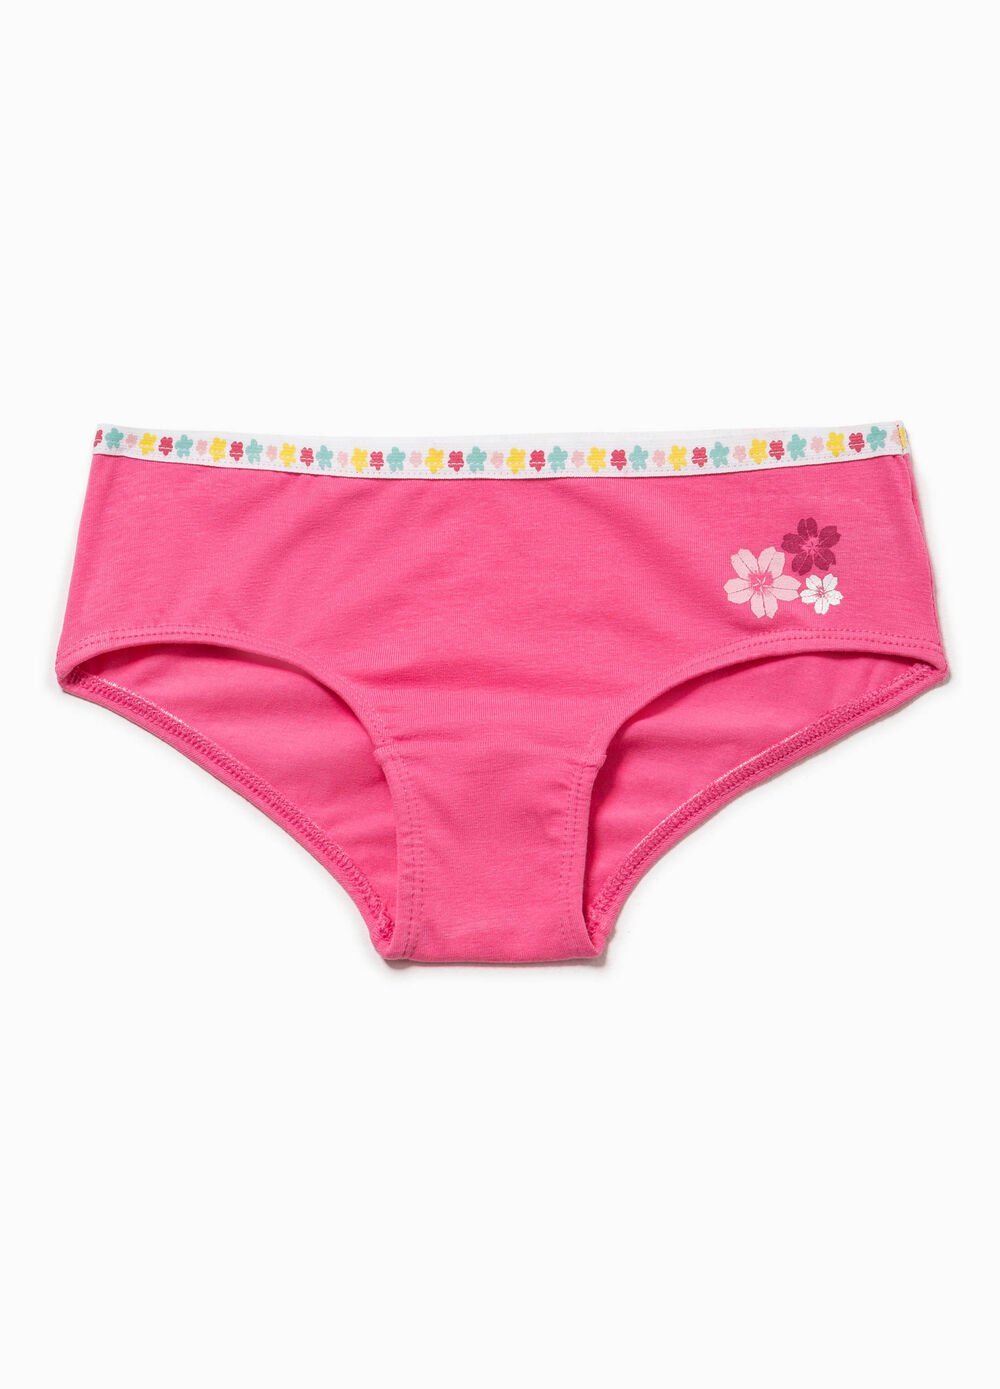 Printed stretch Biocotton French knickers